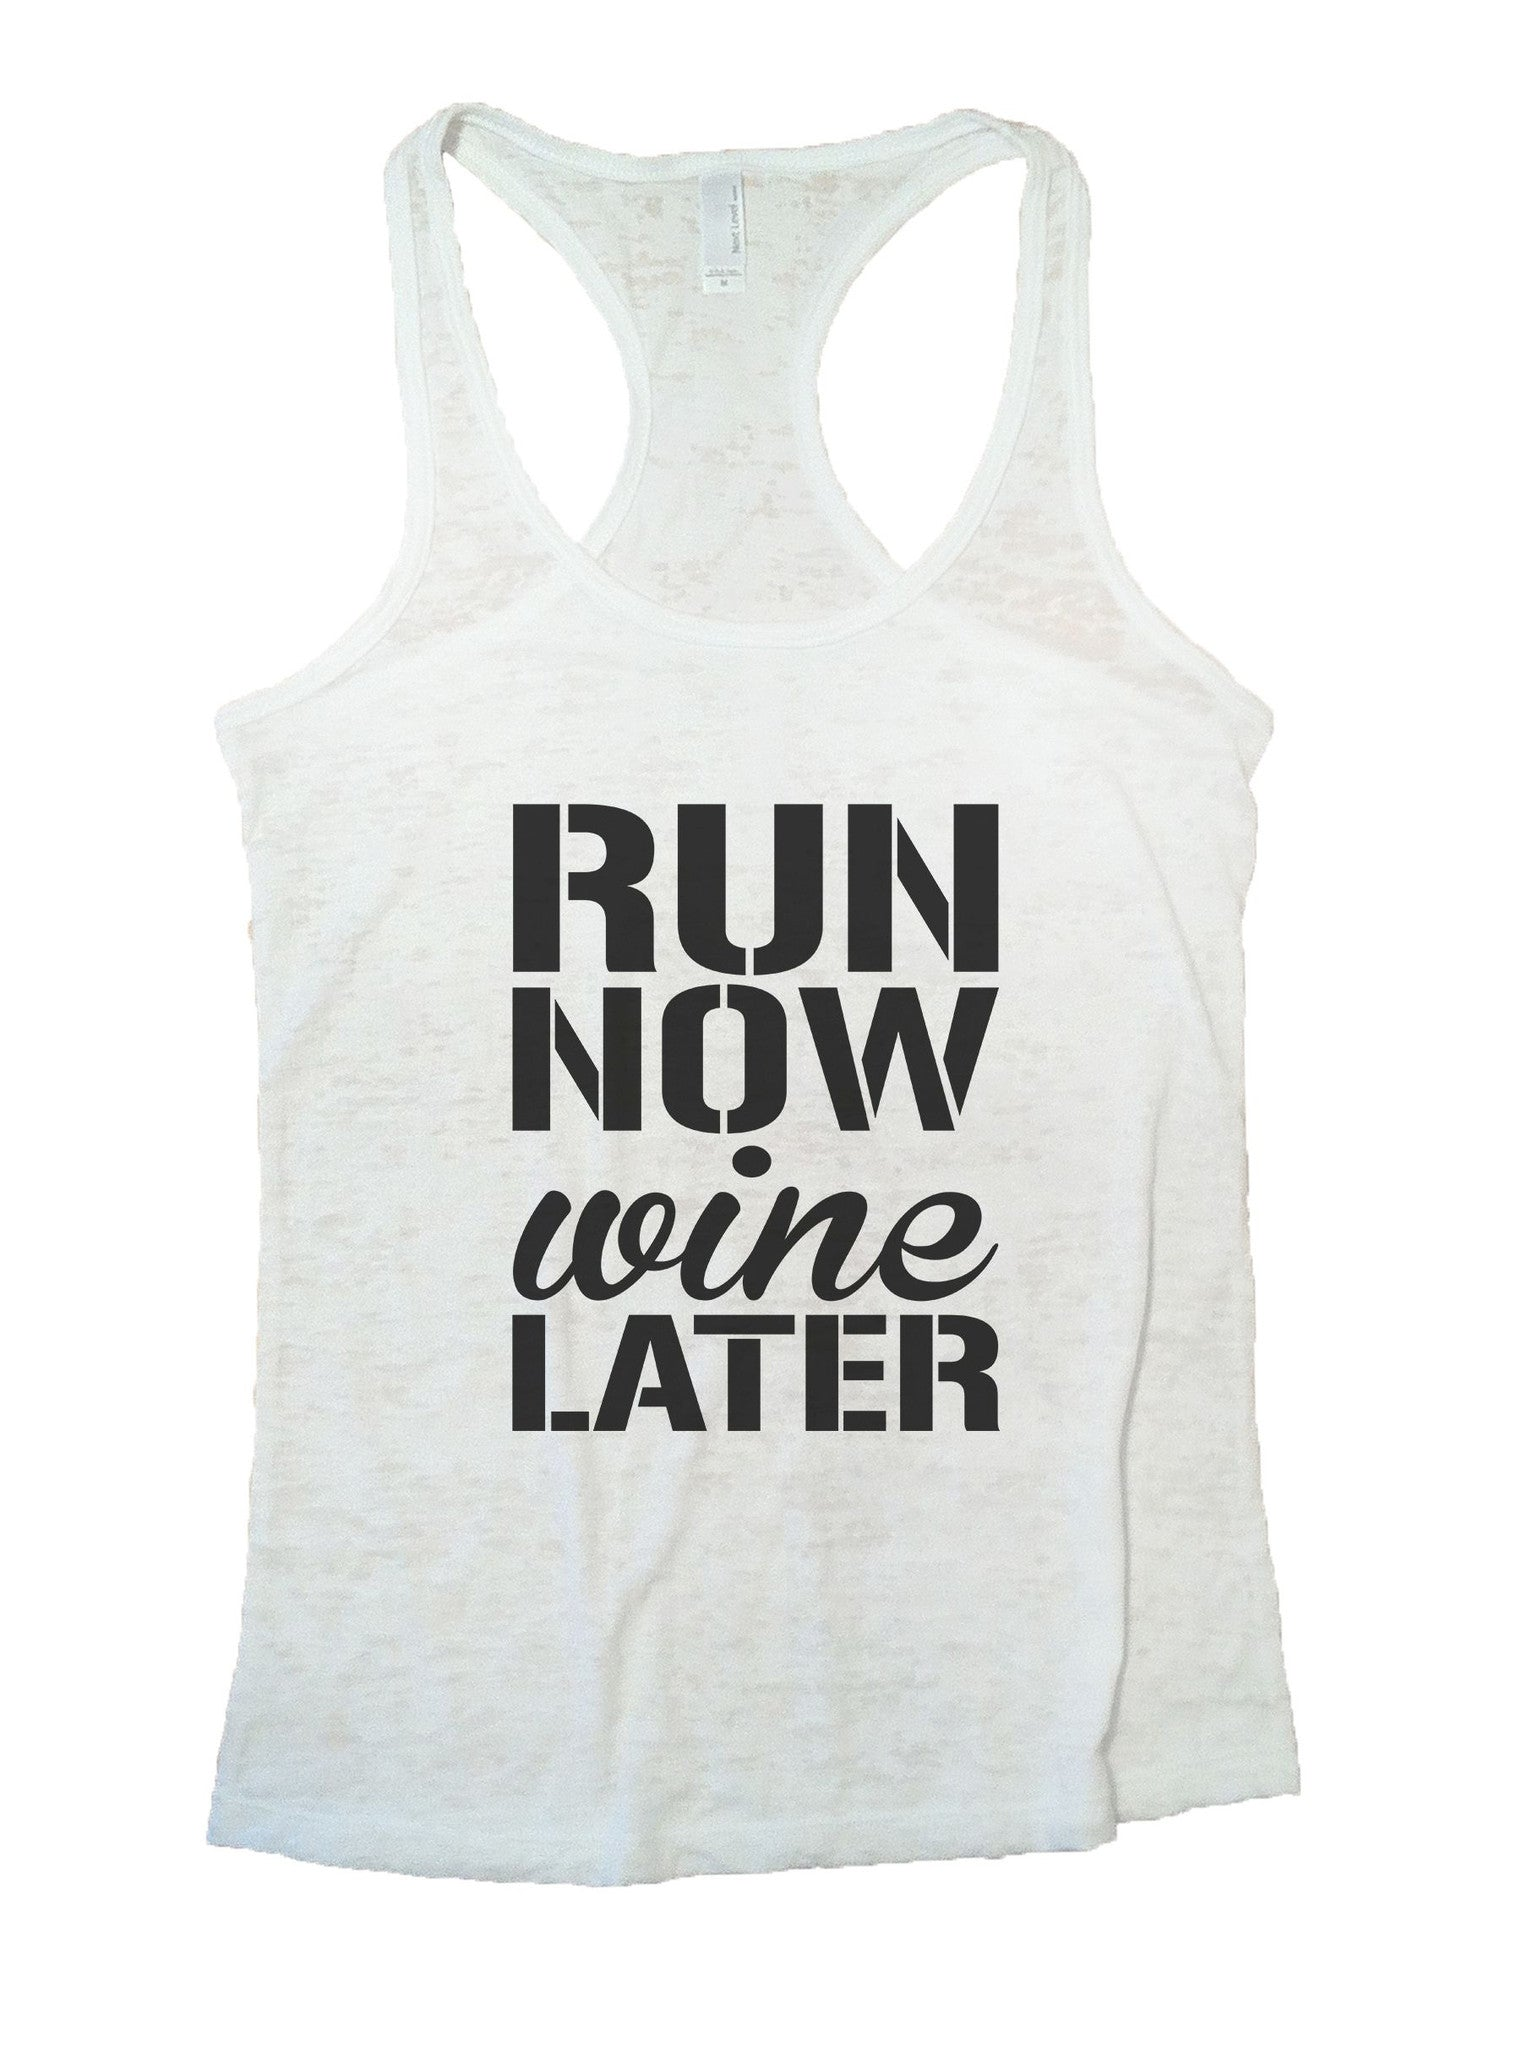 Run Now Wine Later Burnout Tank Top By BurnoutTankTops.com - 951 - Funny Shirts Tank Tops Burnouts and Triblends  - 6